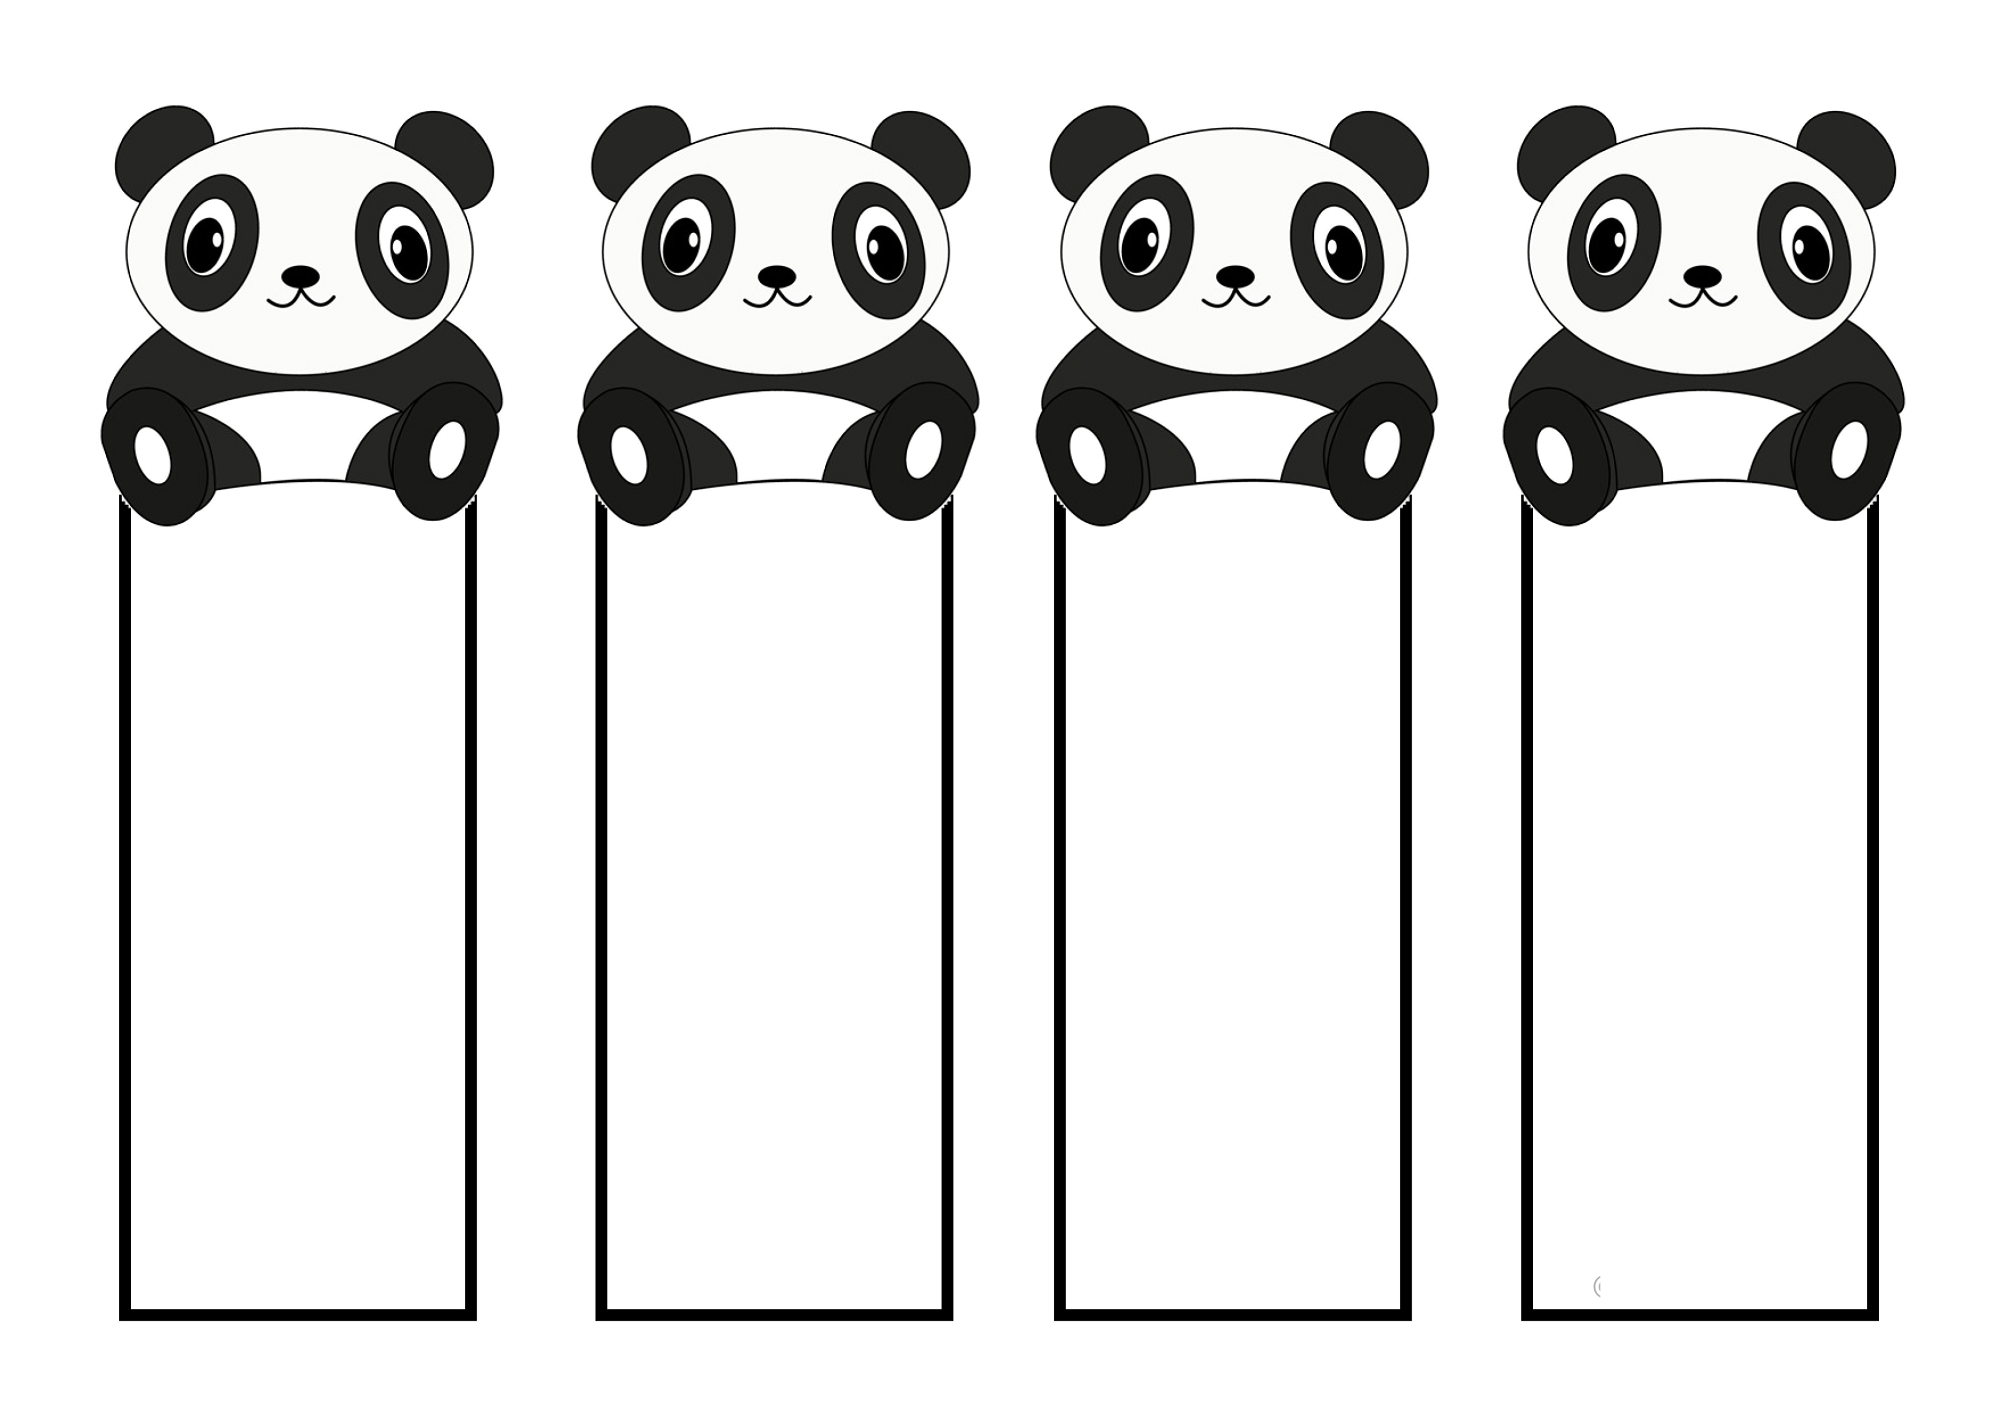 Punchy image intended for printable bookmarks black and white